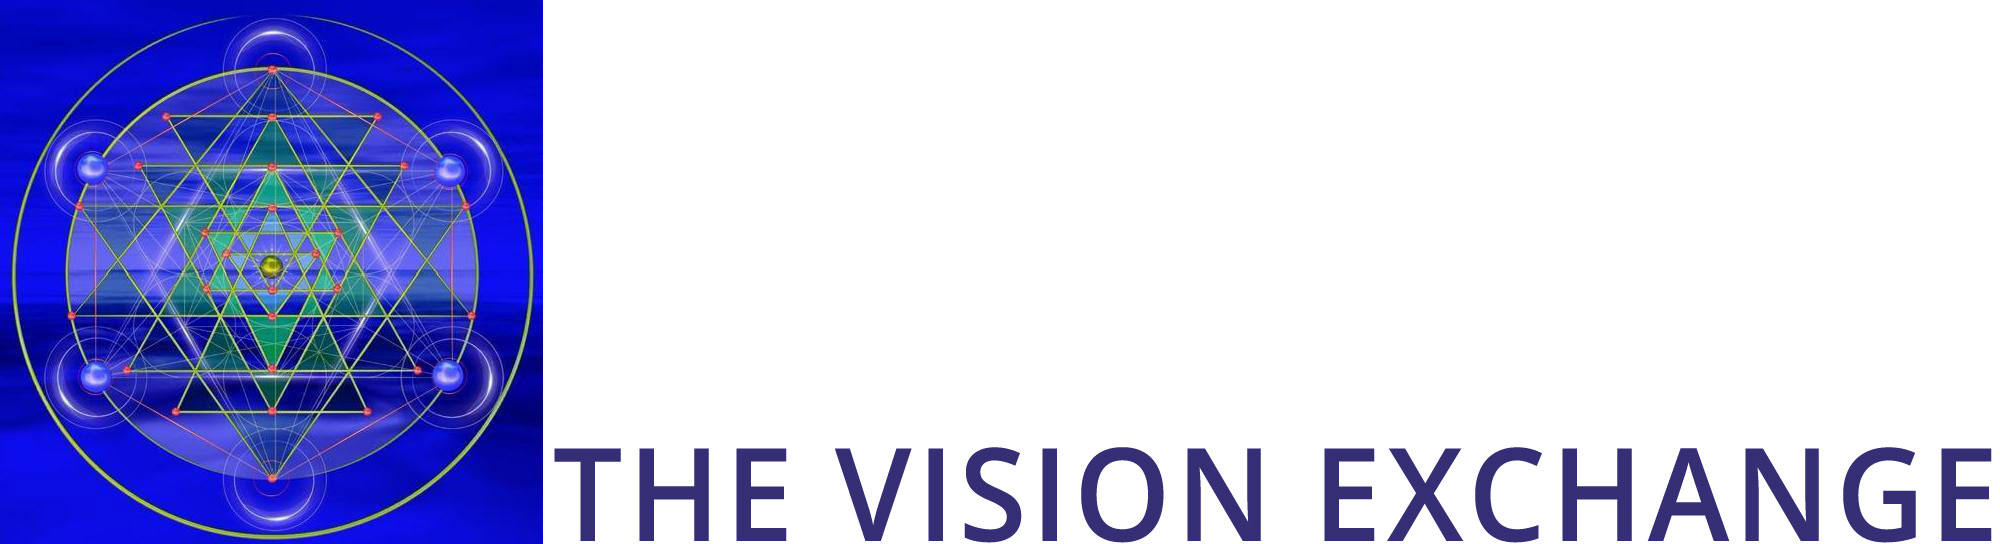 The Vision Exchange